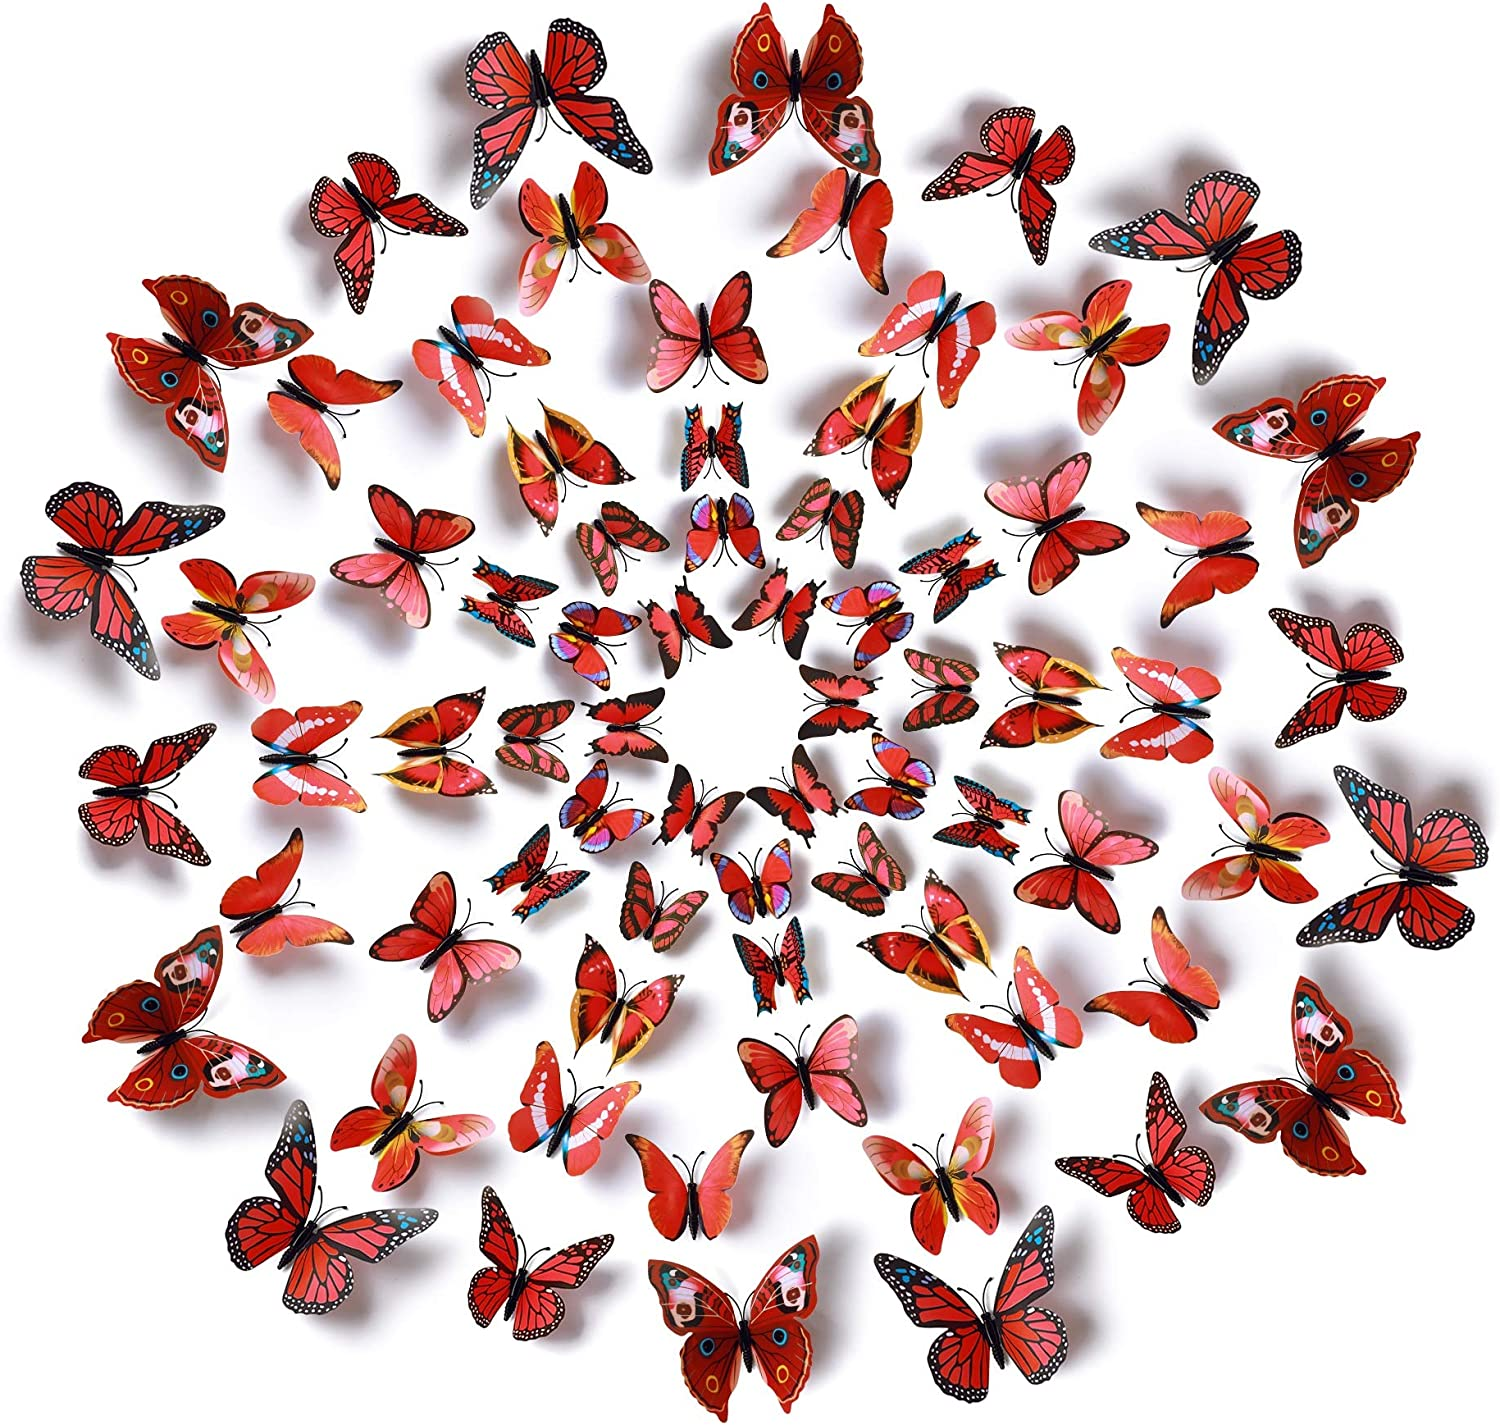 Amaonm 60 Pcs 5 Packages Beautiful 3D Butterfly Wall Decals Removable DIY Home Decorations Art Decor Wall Stickers & Murals for Babys Bedroom Tv Background Living Room (Red)